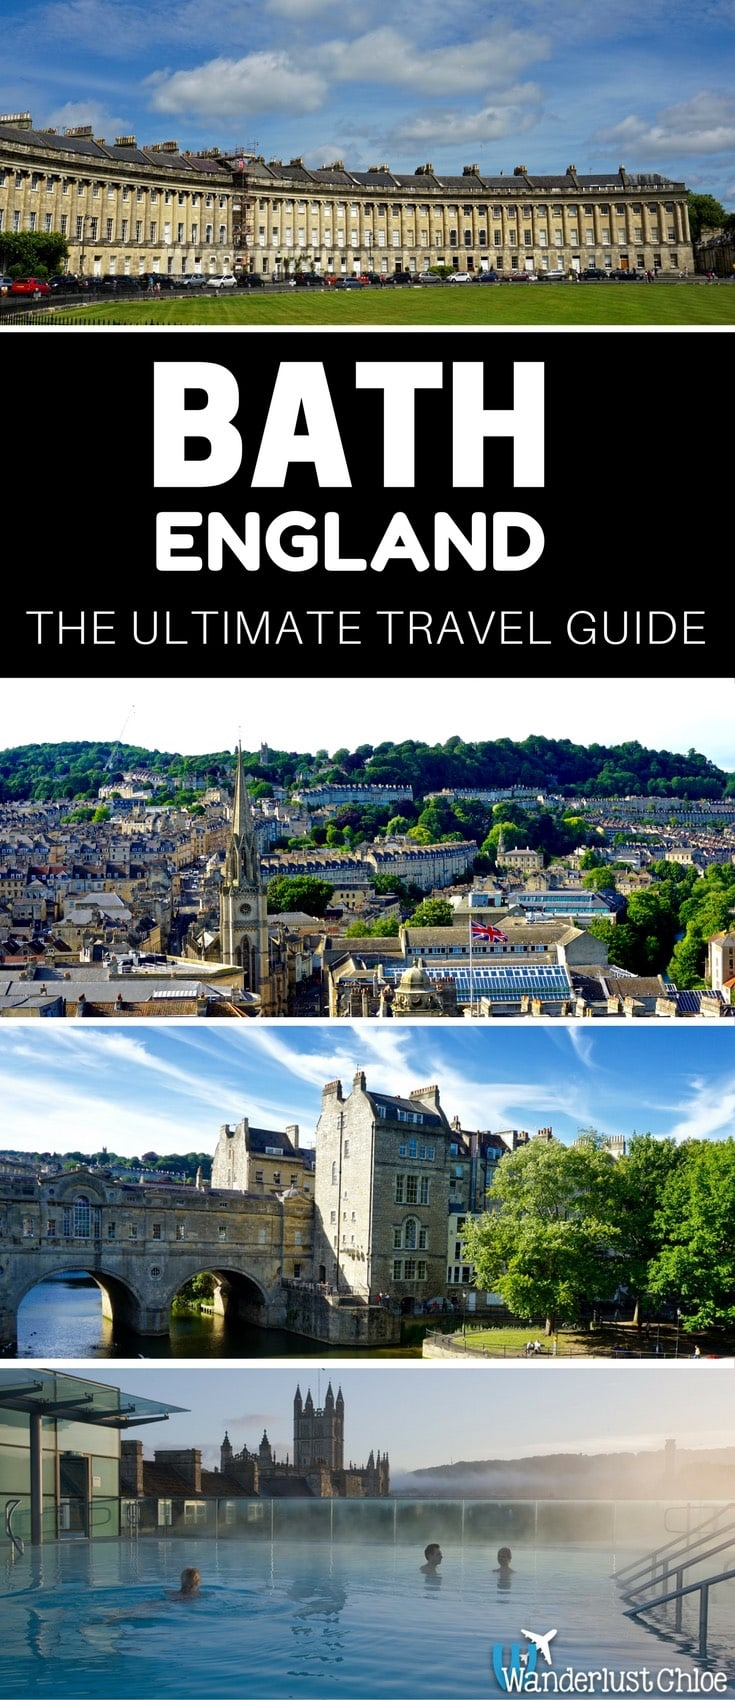 Bath, England: The Ultimate Travel Guide.